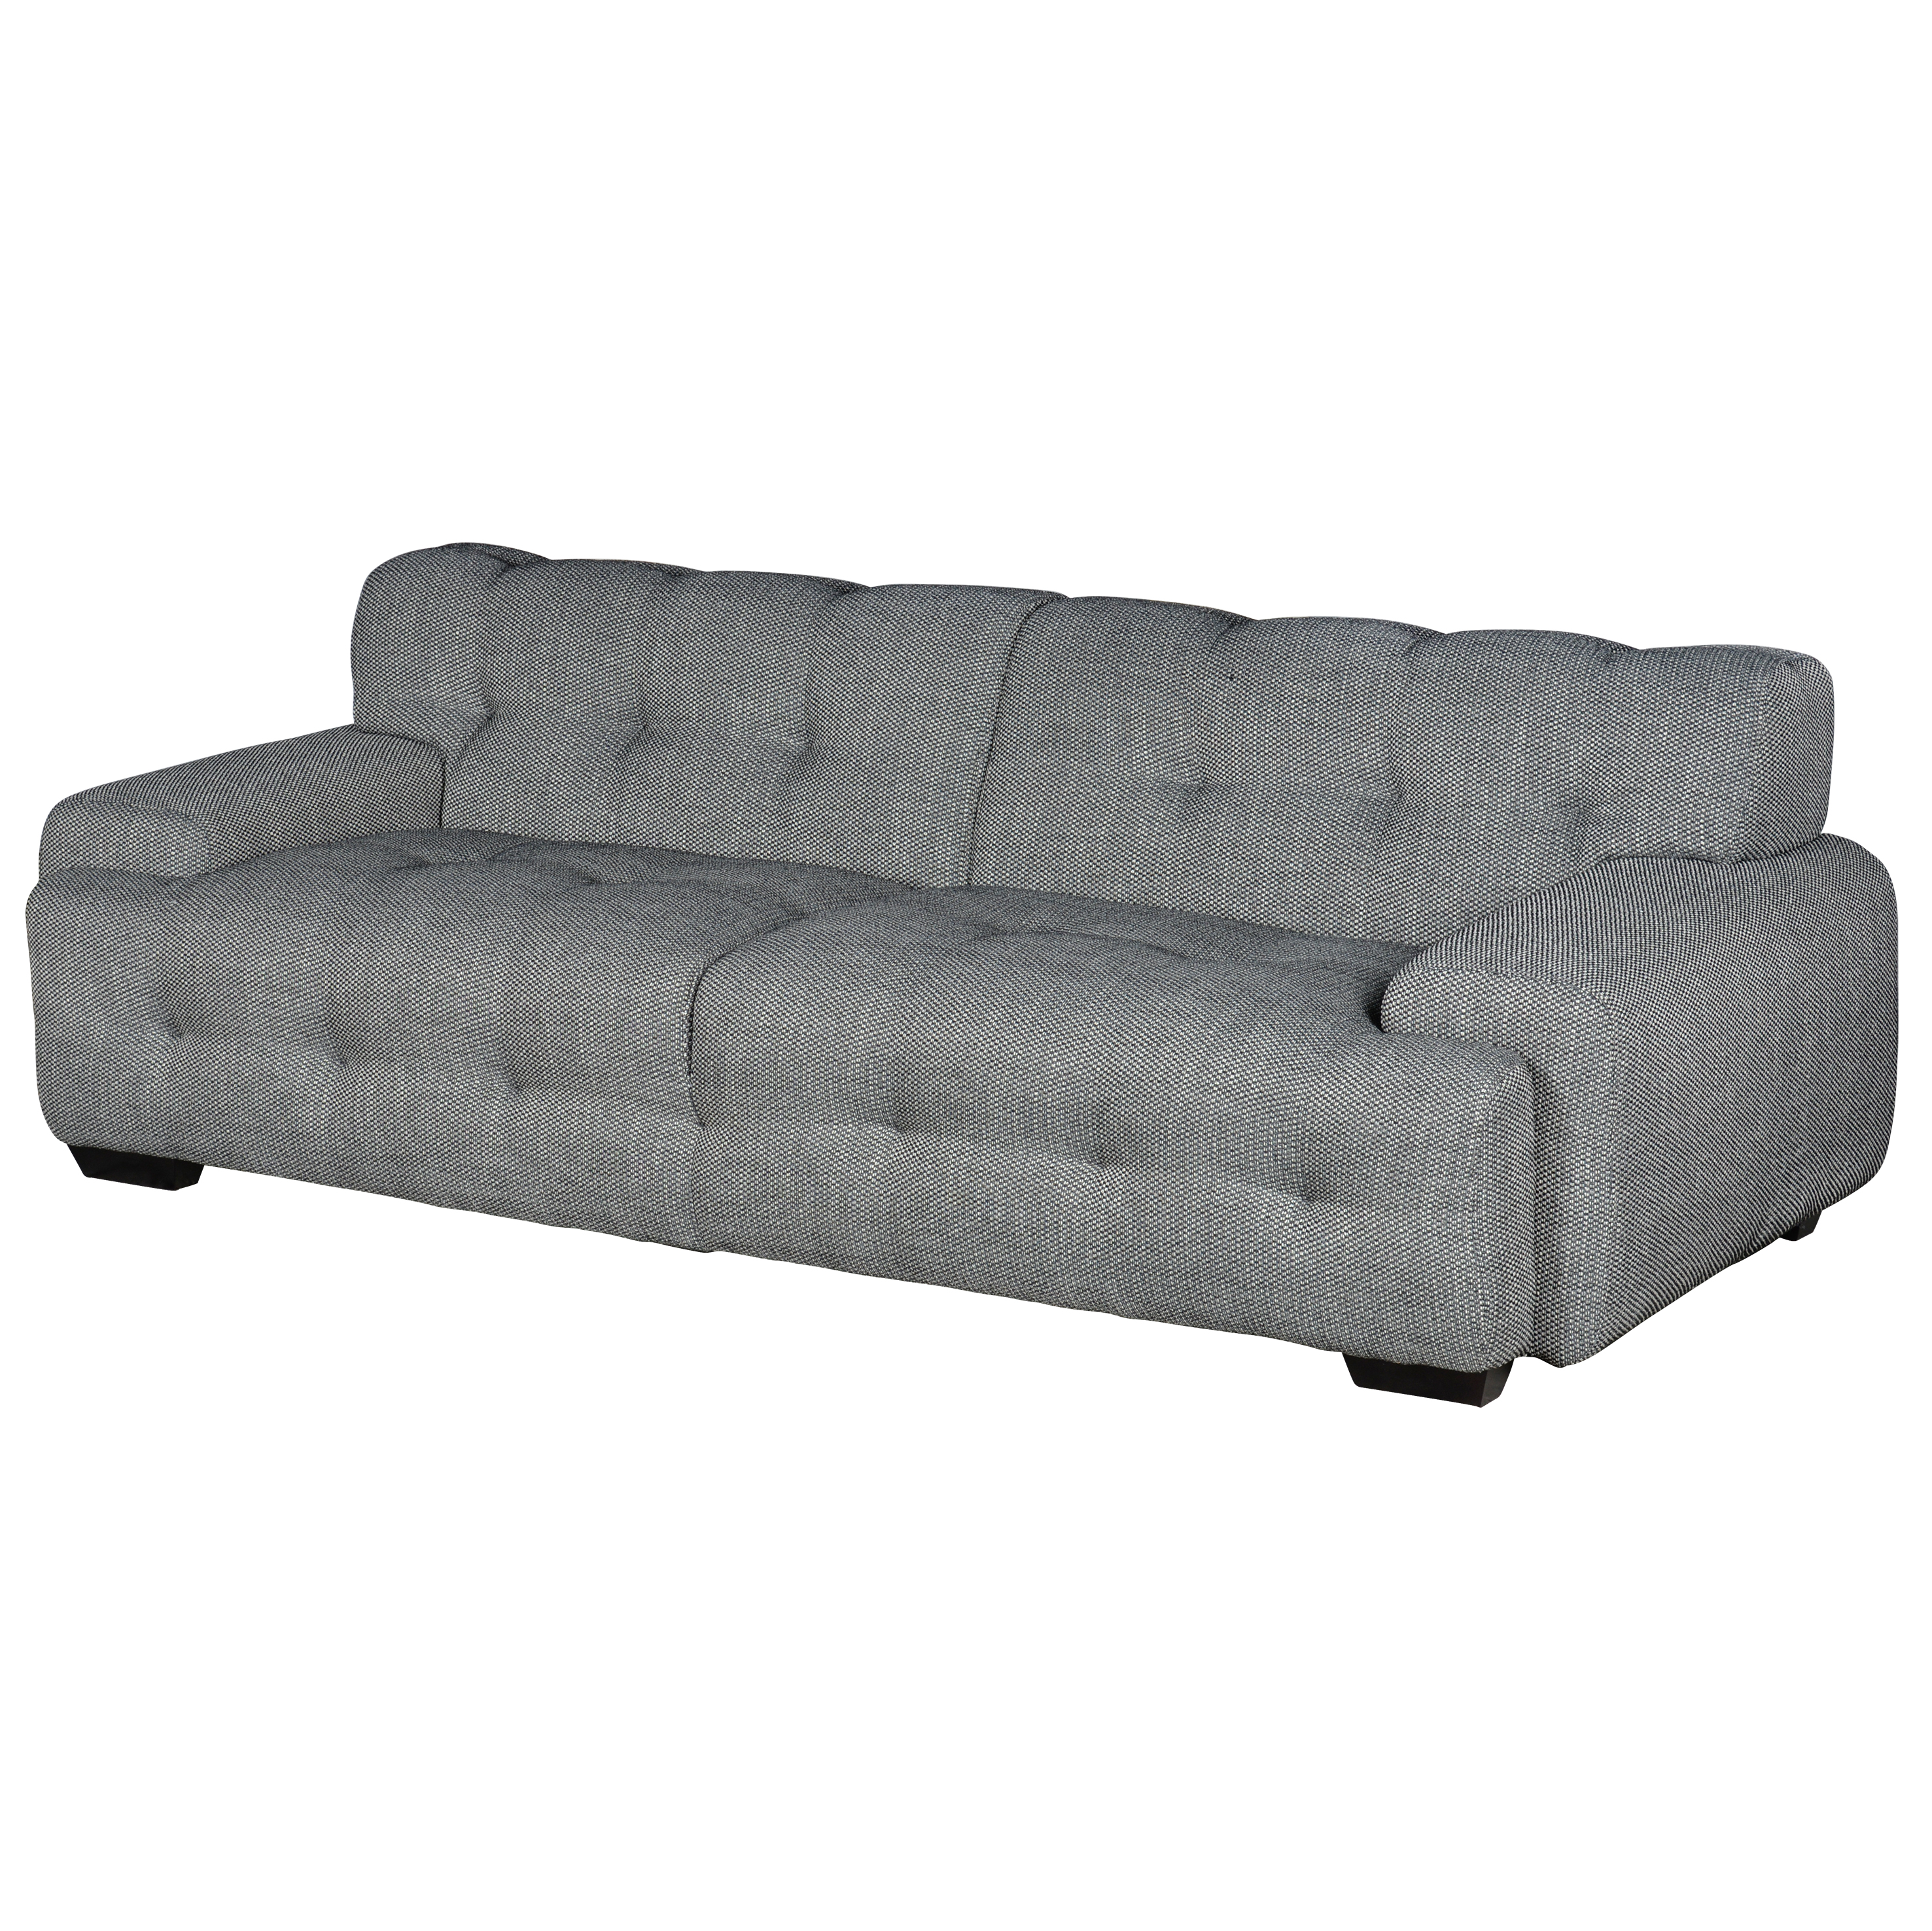 Most Popular Sofas And Sectionals For 2018 | Houzz